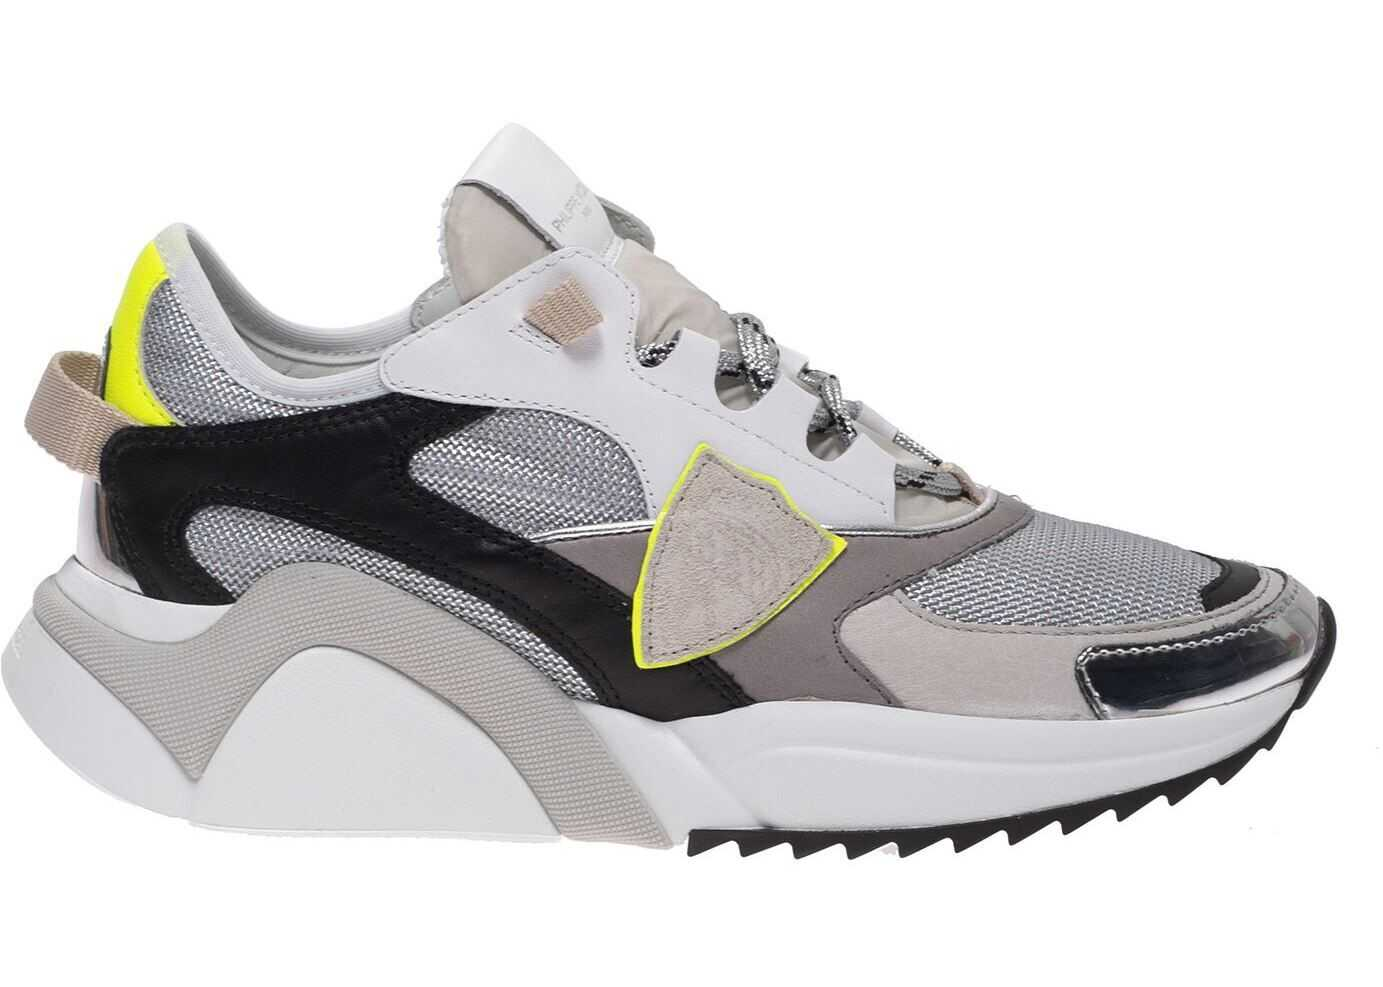 Philippe Model Eze Sneakers In Gray With Fluo Details Grey